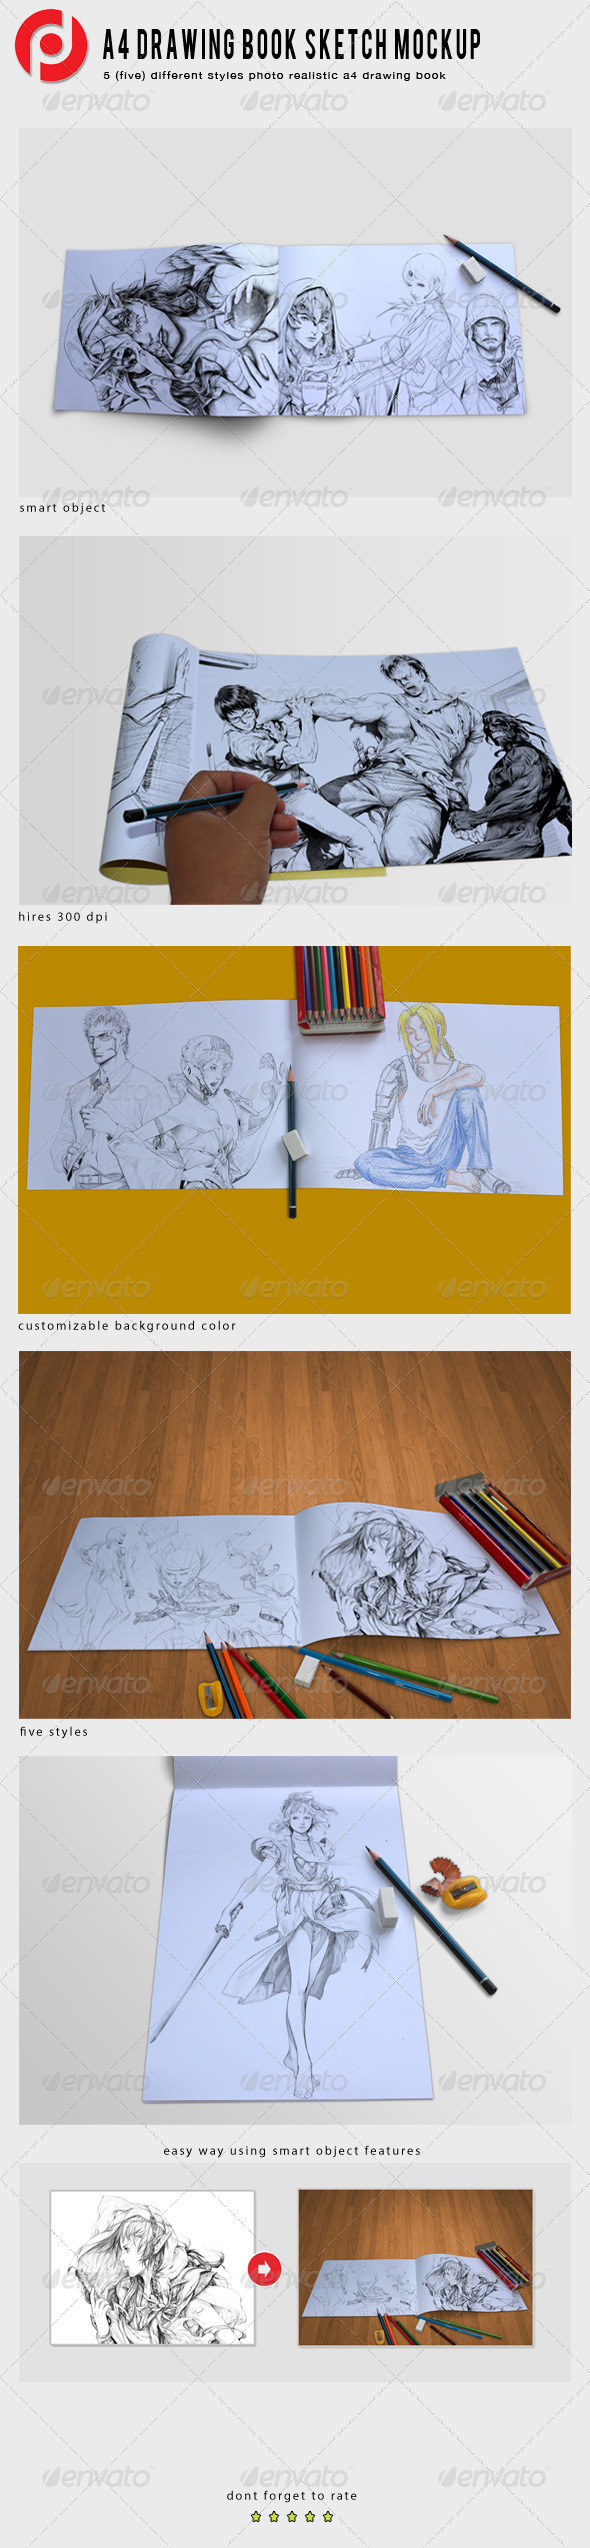 A4 Drawing Book Mockup